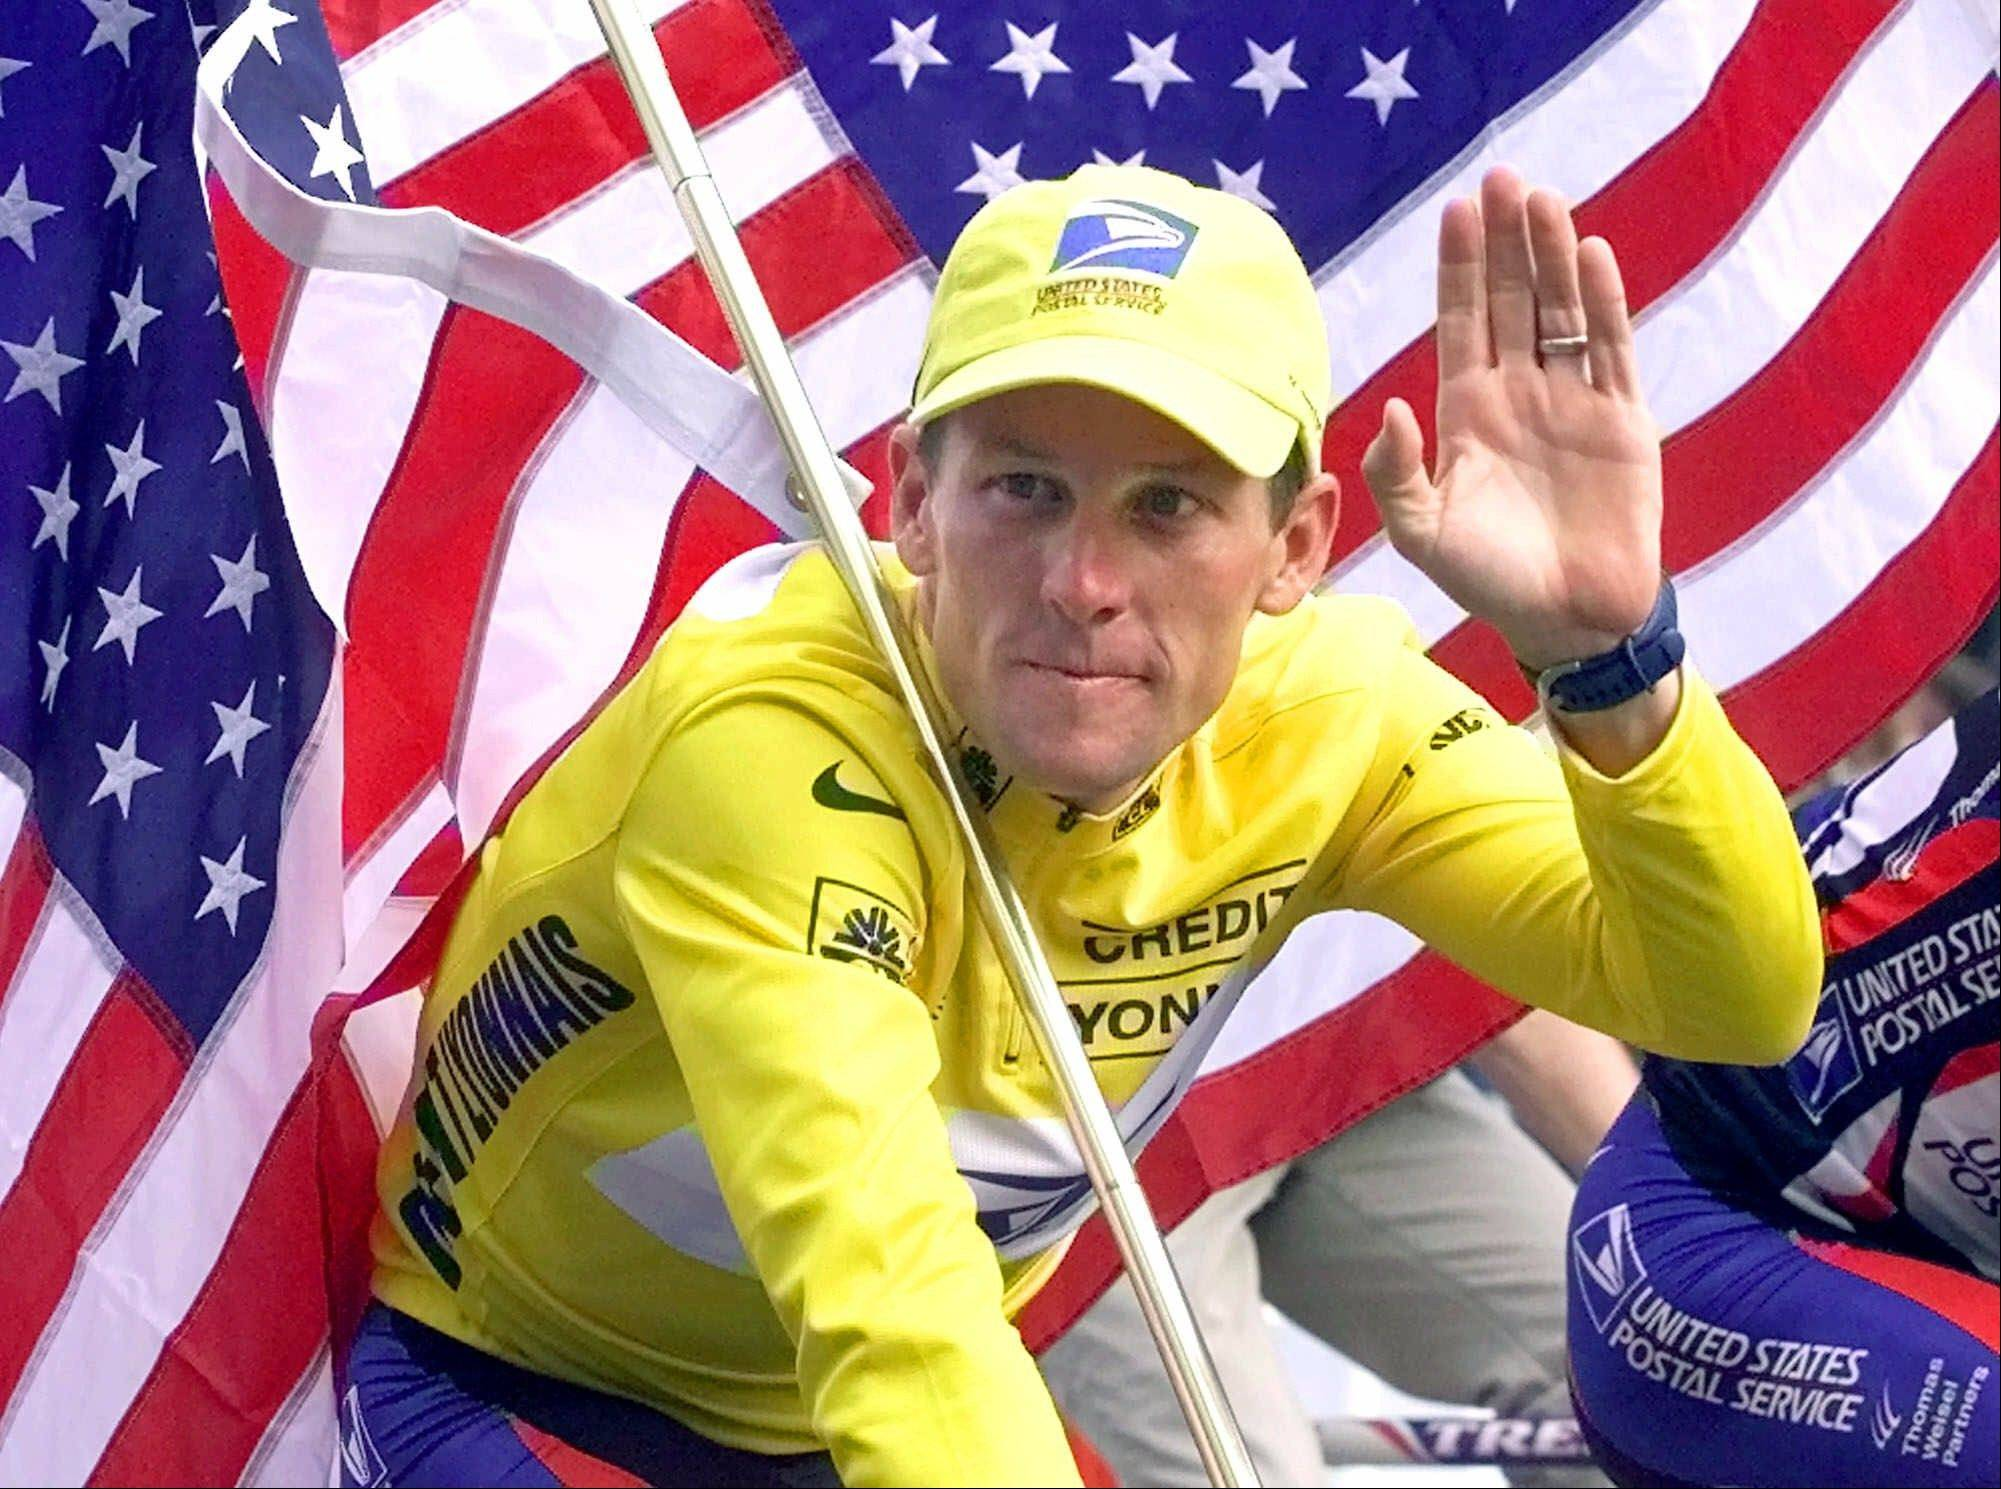 Lance Armstrong banned for life, career vacated